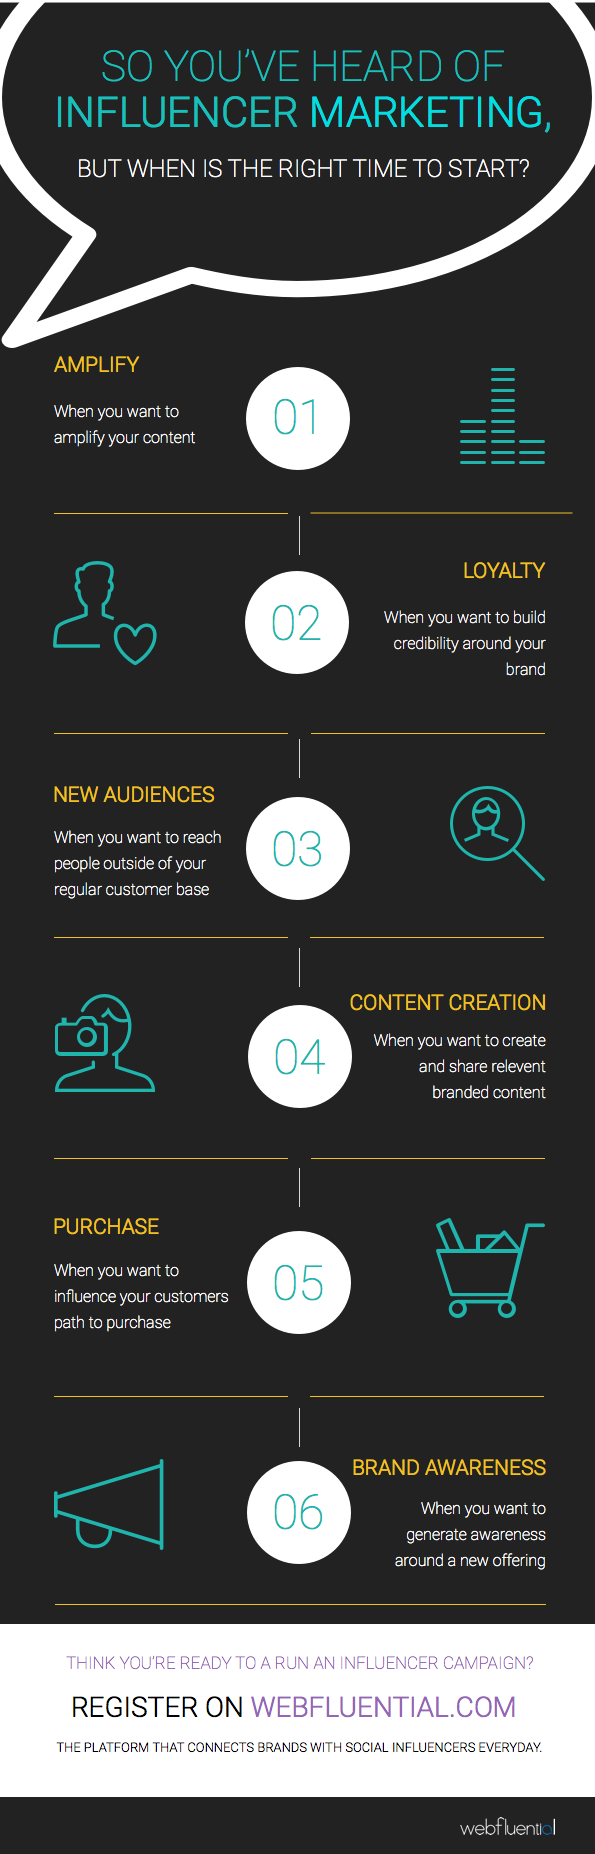 When Should you start influencer marketing? #Infographic